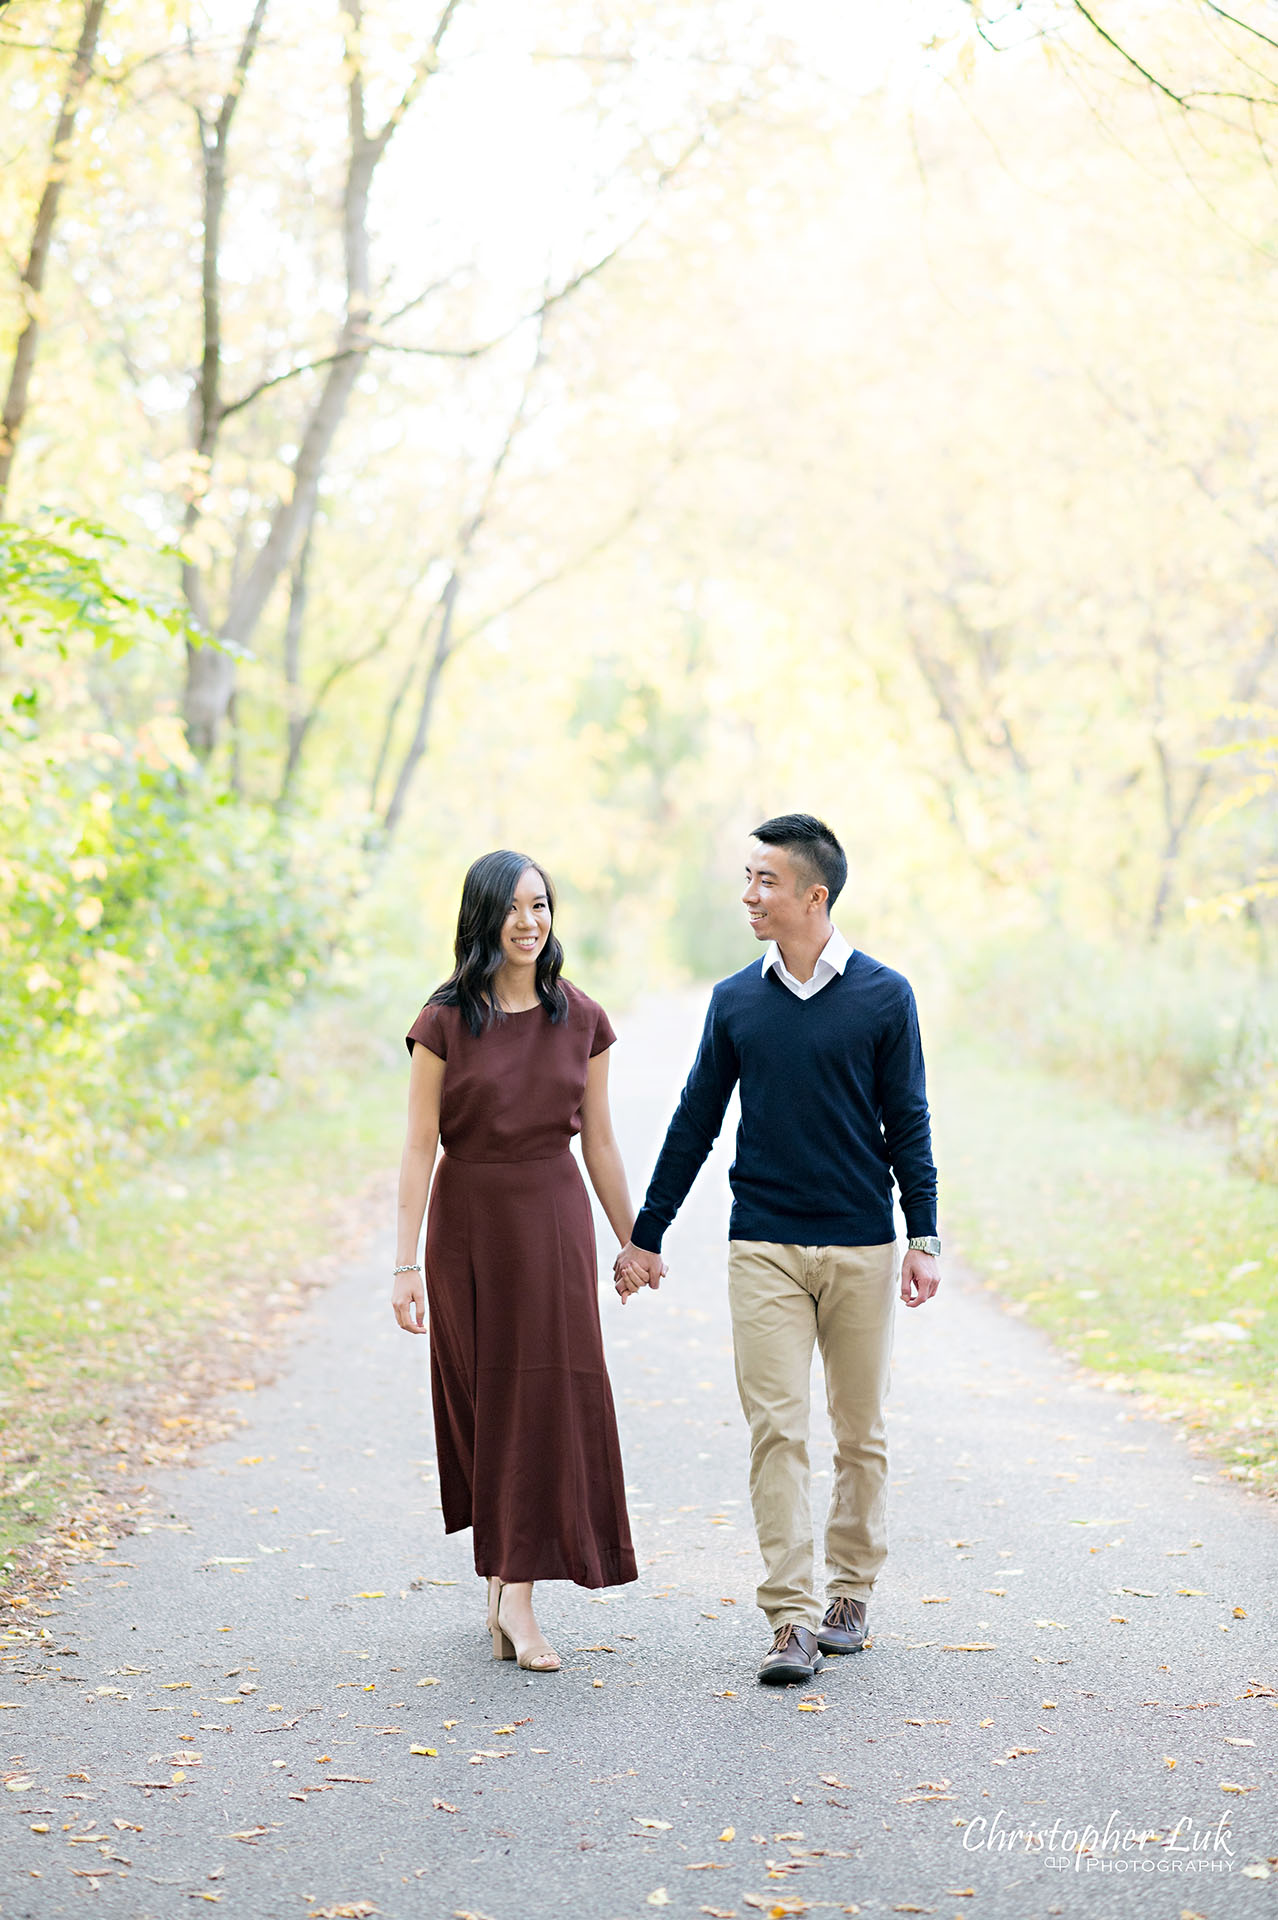 Christopher Luk Toronto Wedding Engagement Session Photographer Autumn Fall Leaves Natural Candid Photojournalistic Bride Groom Holding Hands Walking Together Pathway Hiking Trail